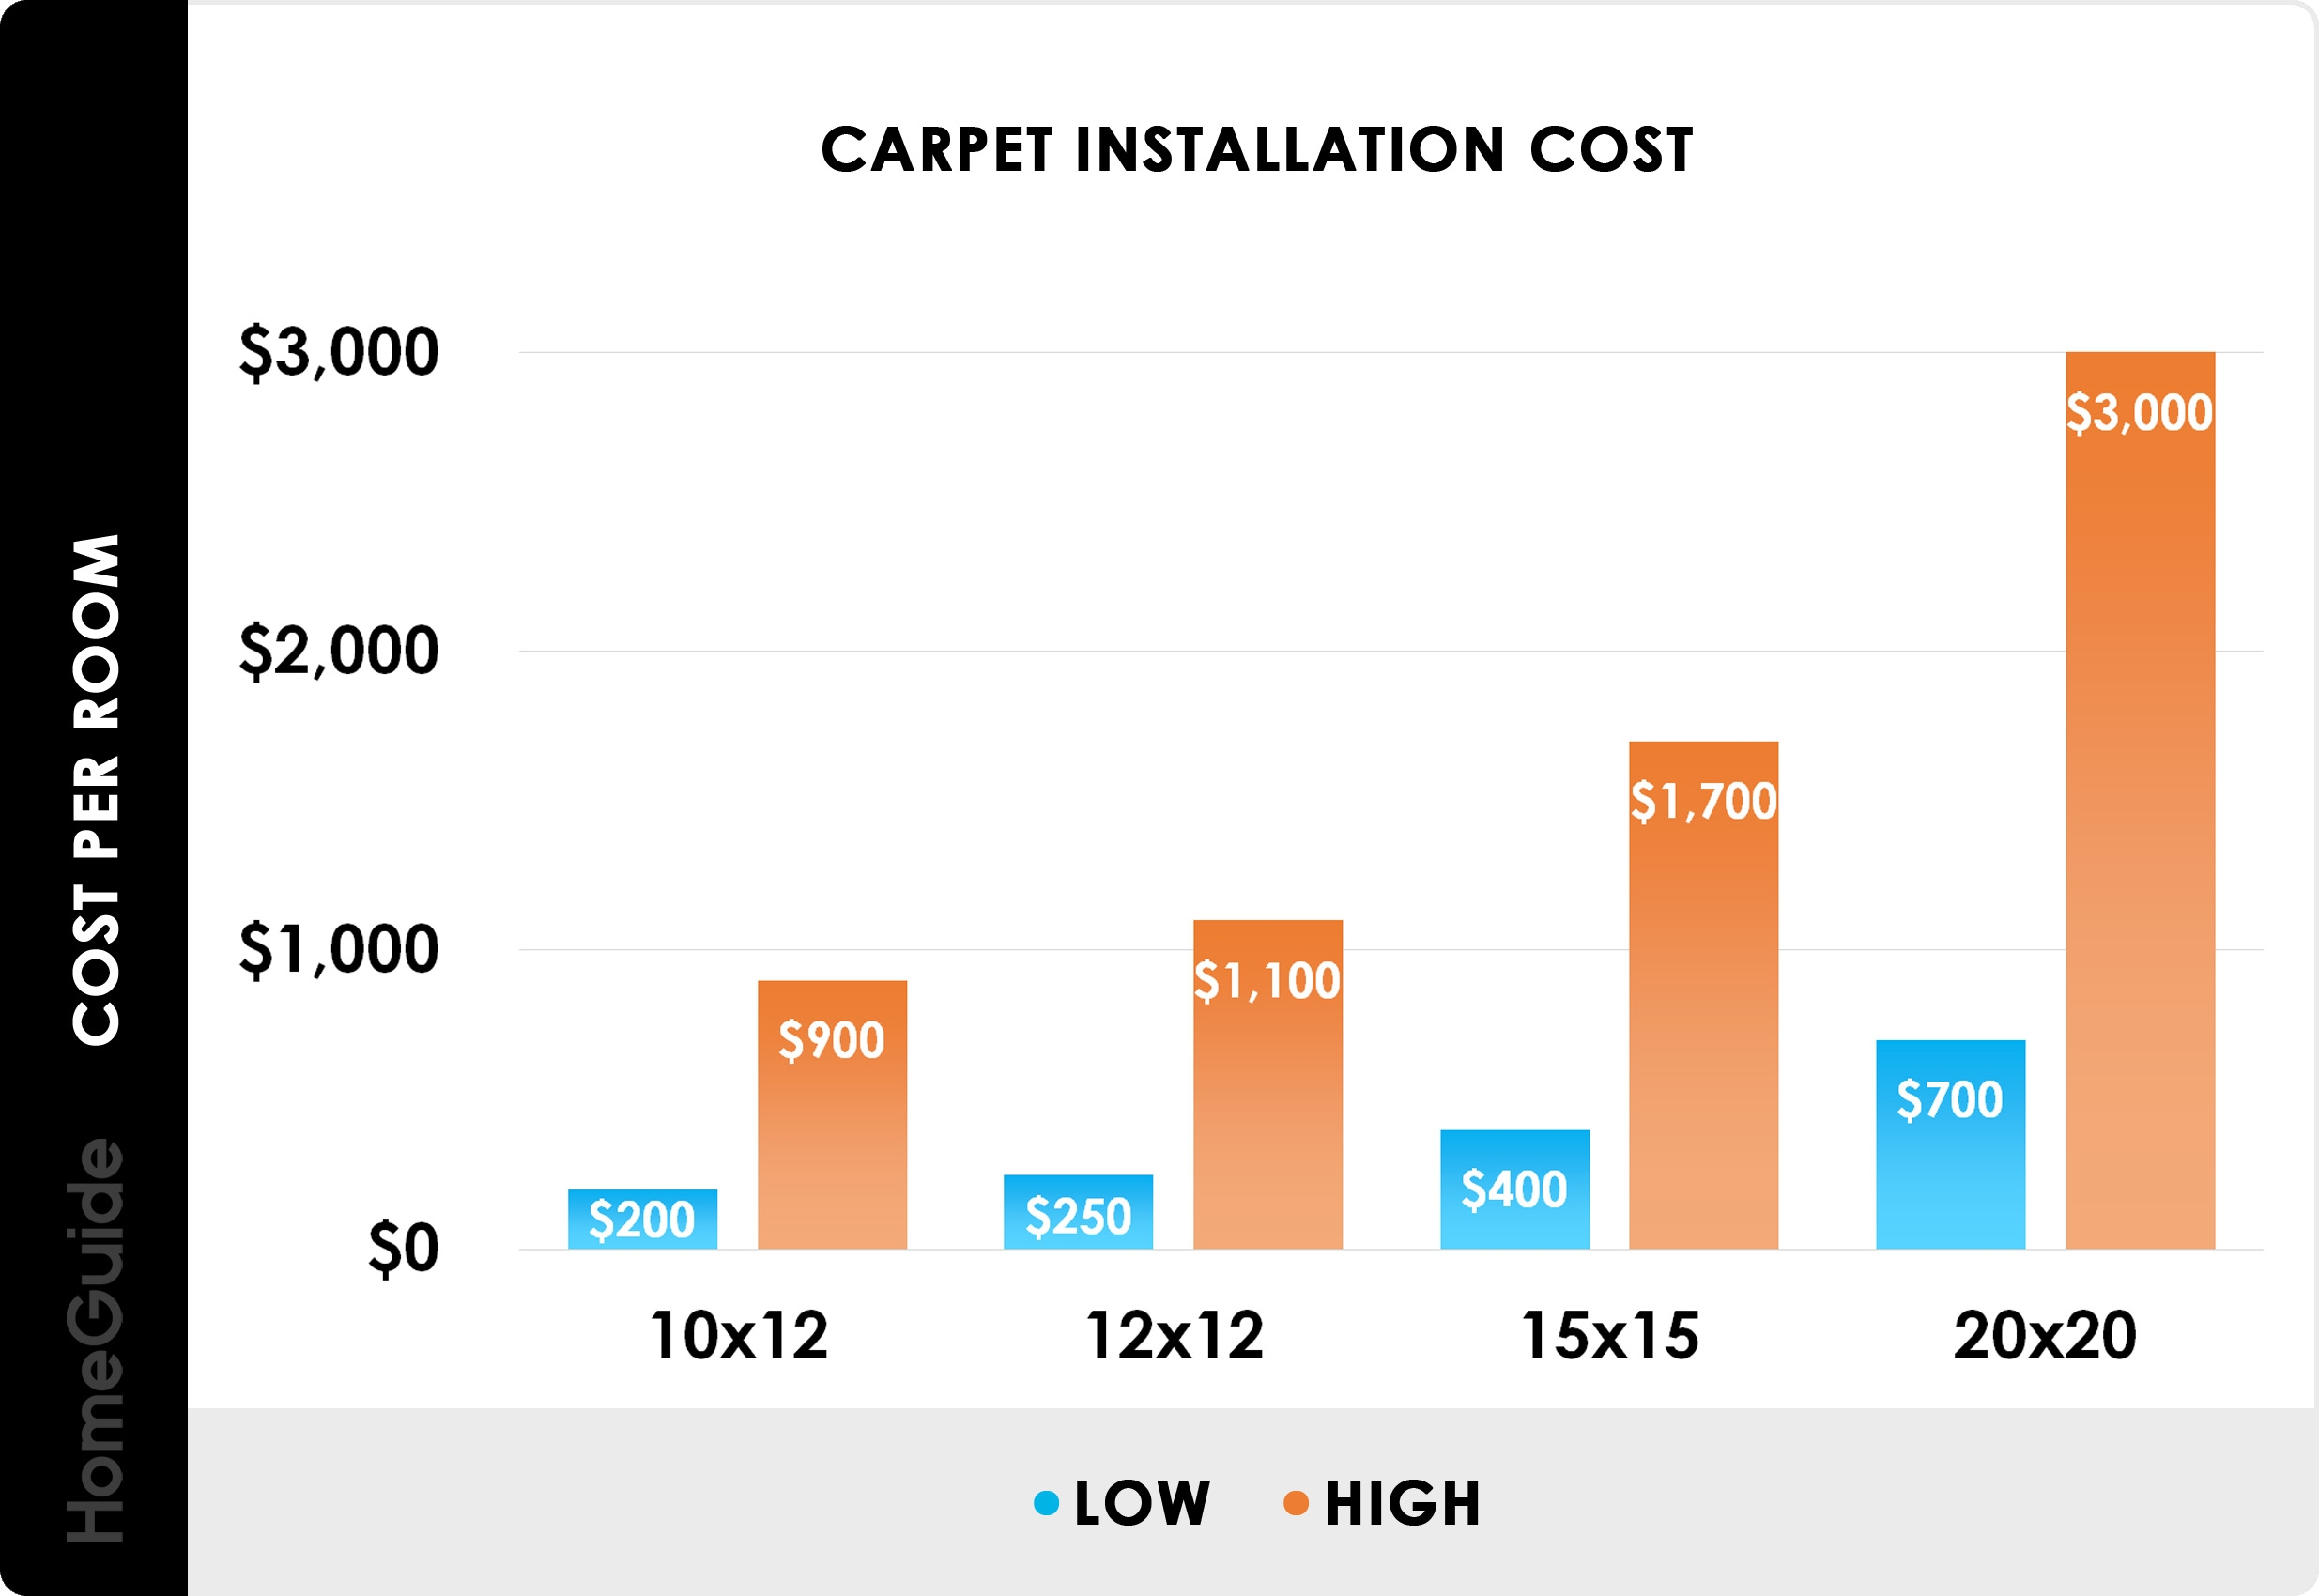 2020 Carpet Installation Cost Replacement Cost Per Square Foot | Average Cost To Carpet Stairs | Stair Case | Stair Runner | Hardwood Floors | Wood Flooring | Carpet Installation Cost